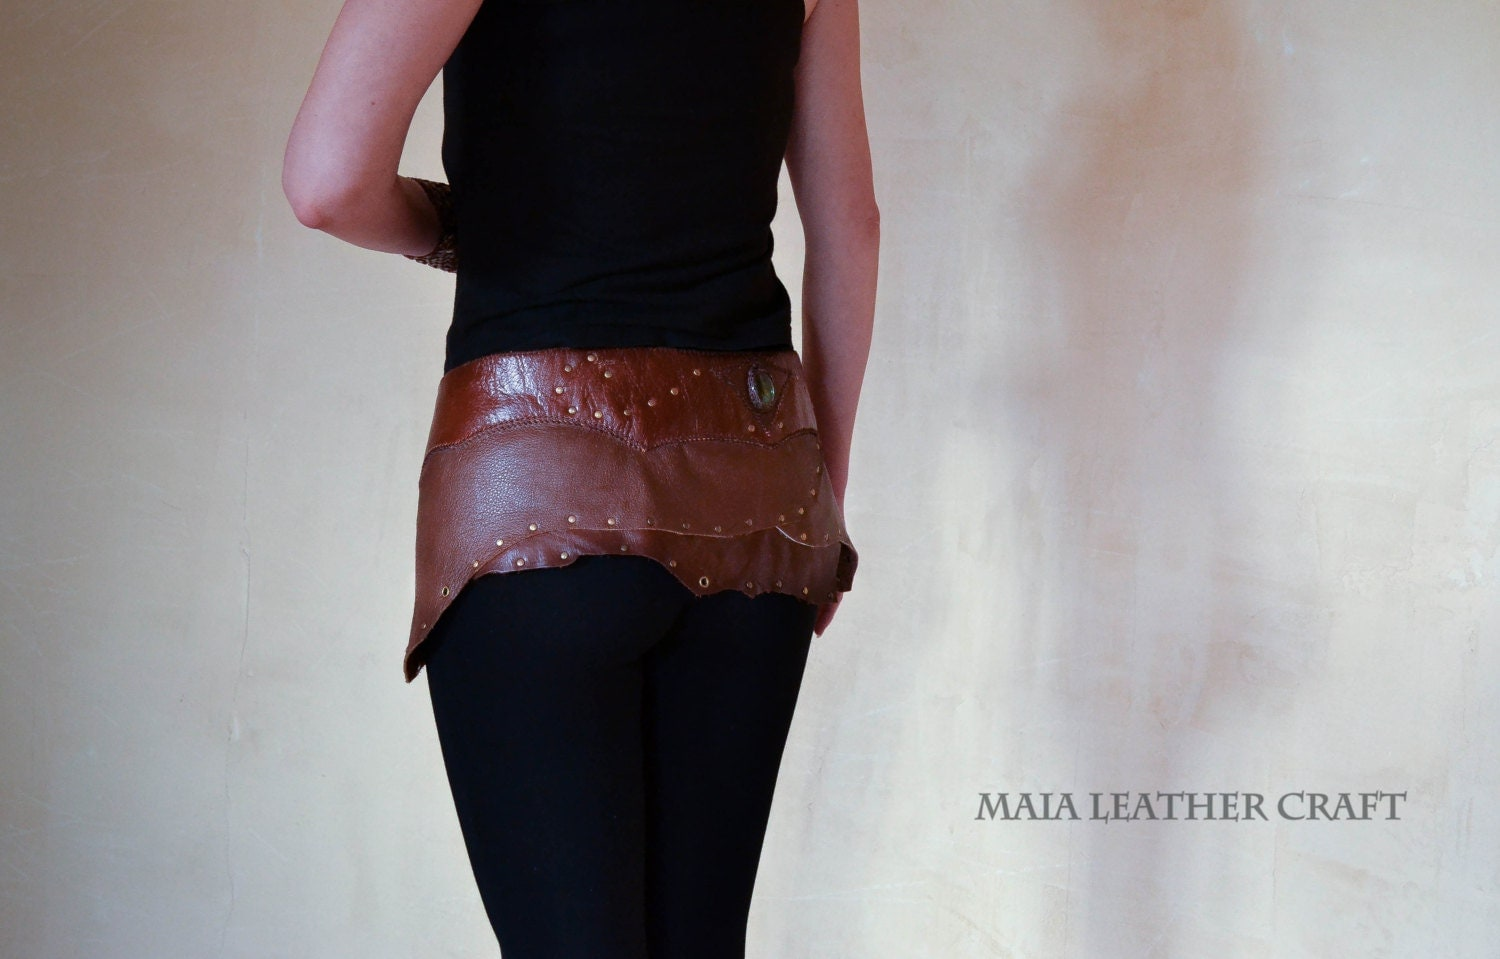 Leather - Mini skirt - labradorite - size S/M steampunk buy now online